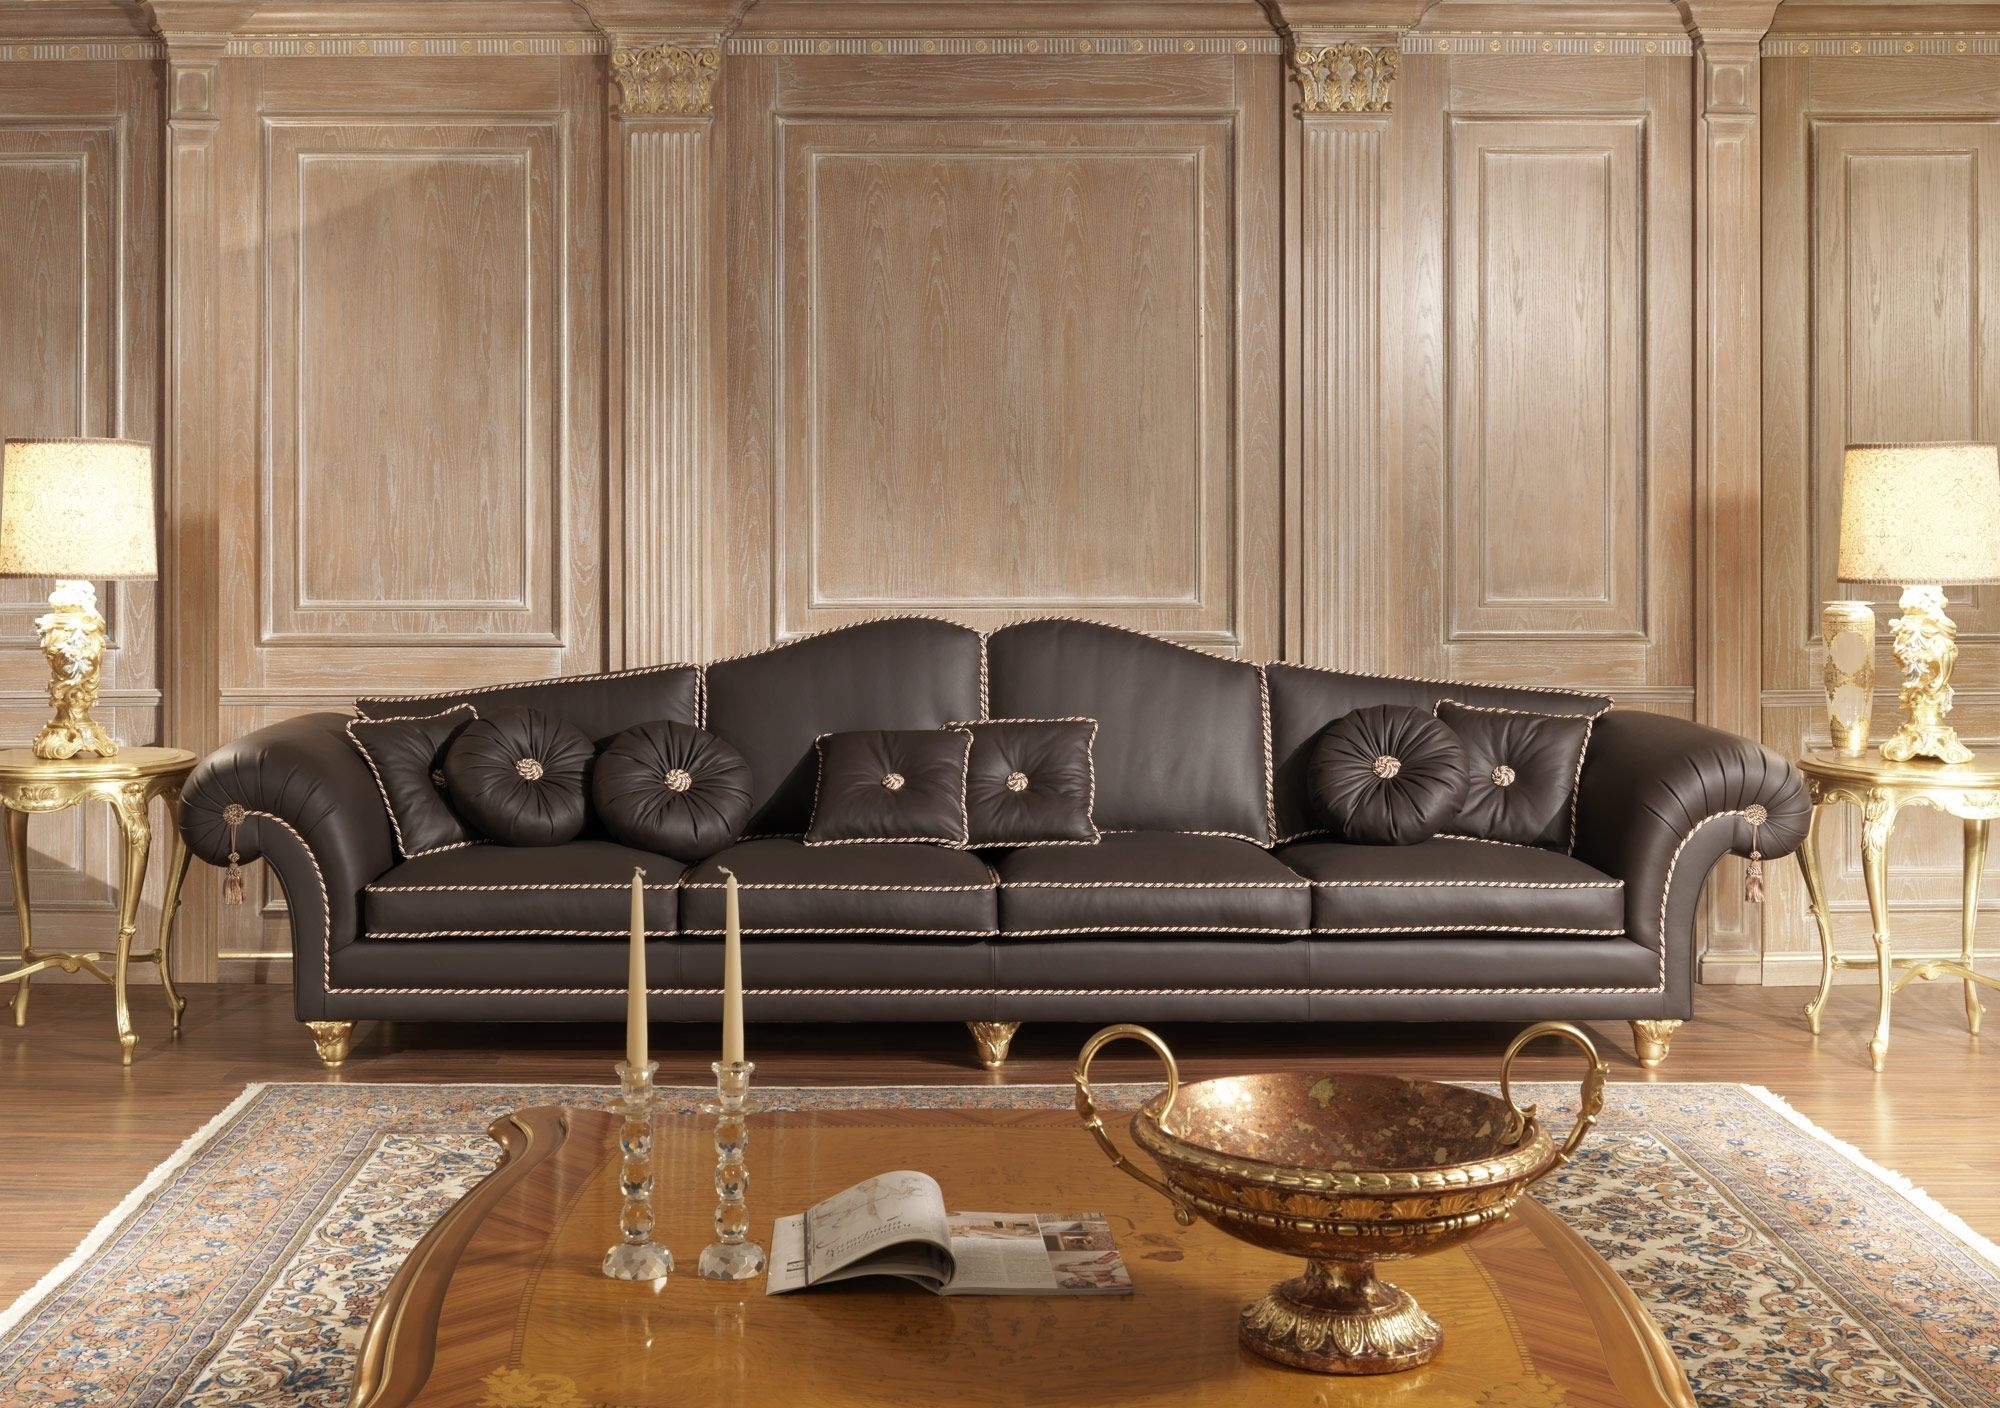 Classic Sofas: Important Dimensions | Sofa | Pinterest | Classic Within Classic Sofas (Image 4 of 10)